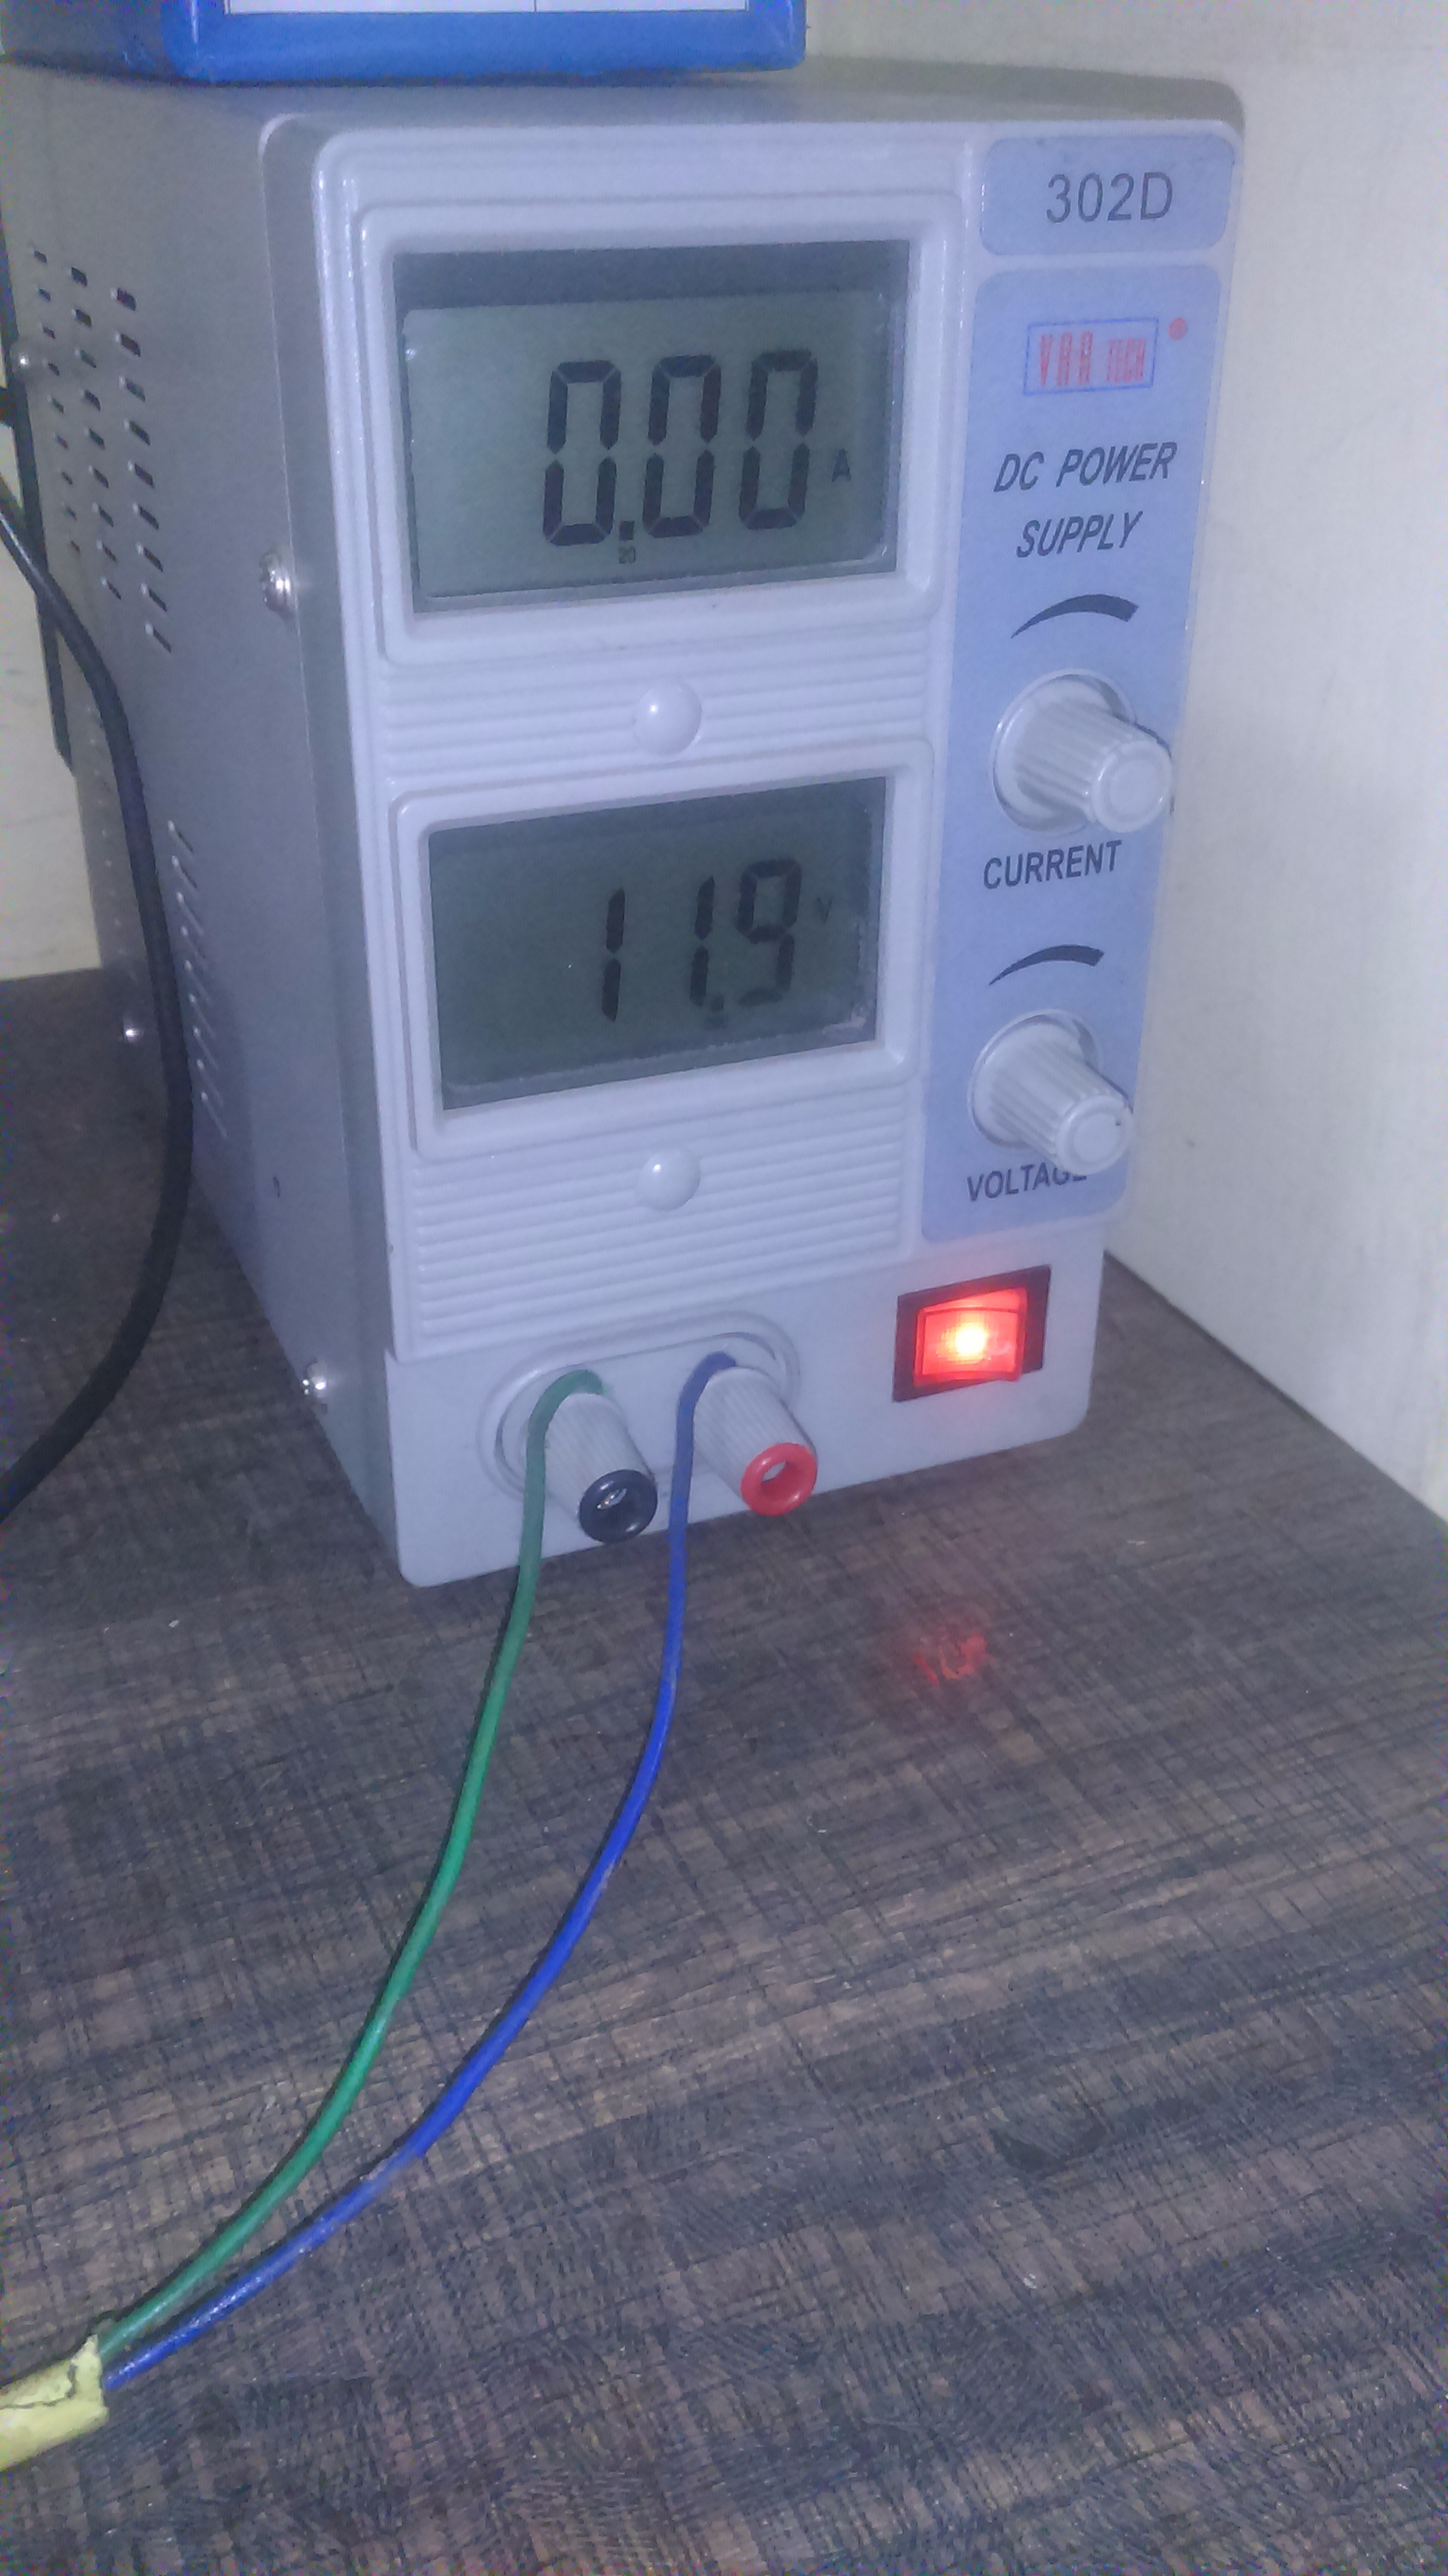 Picture of After Connection You Can Switch on the DC Power Supply